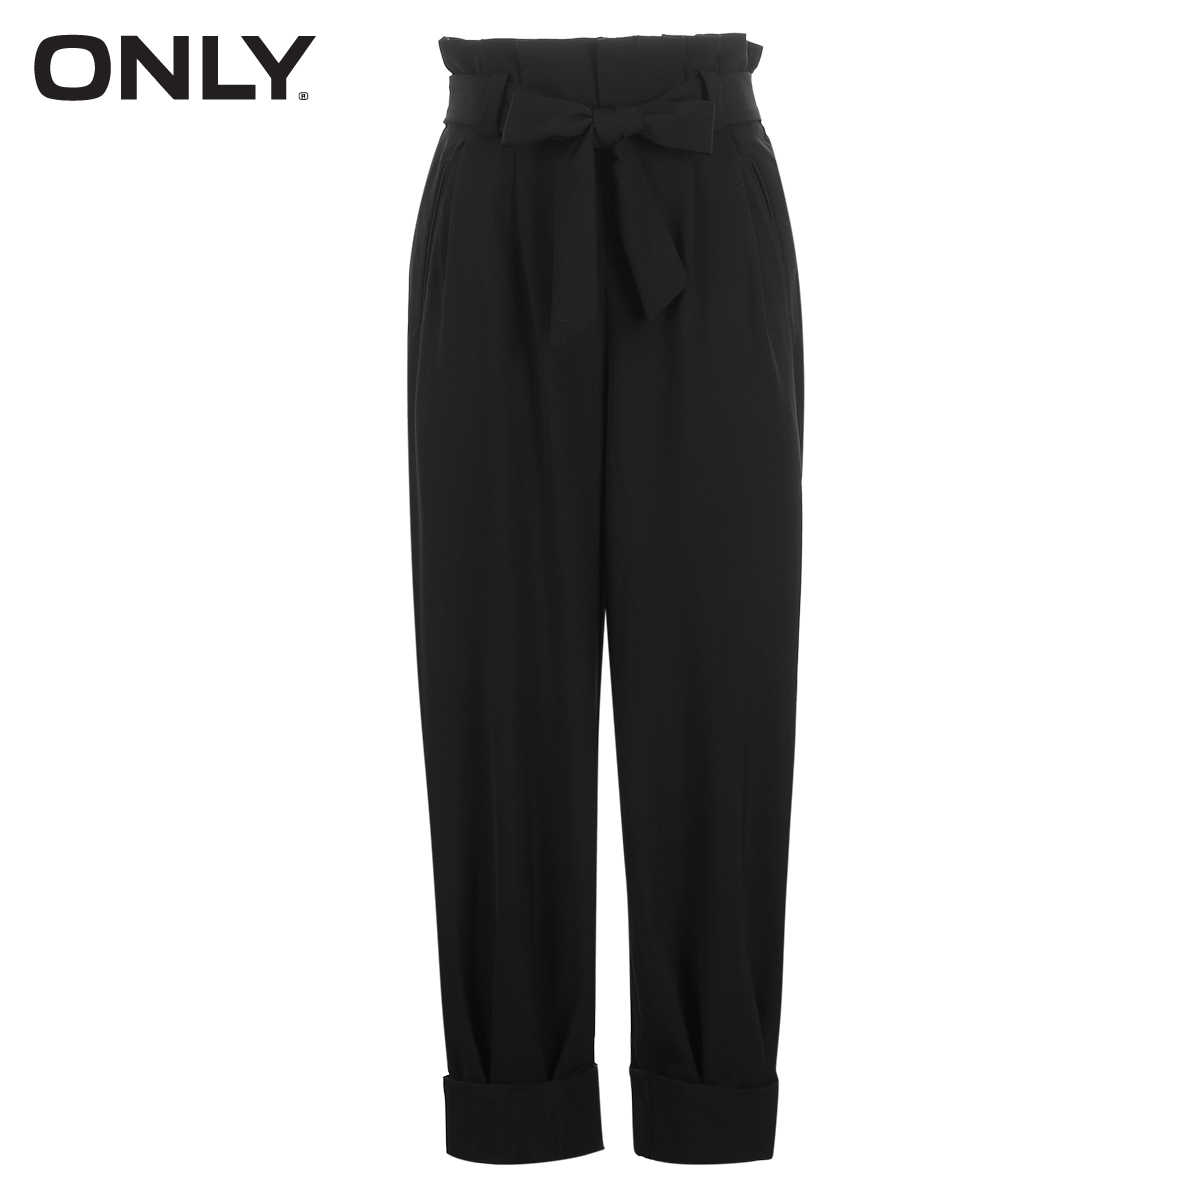 ONLY Summer Women's Lace-up High-rise Rolled Crop Pants |118350528